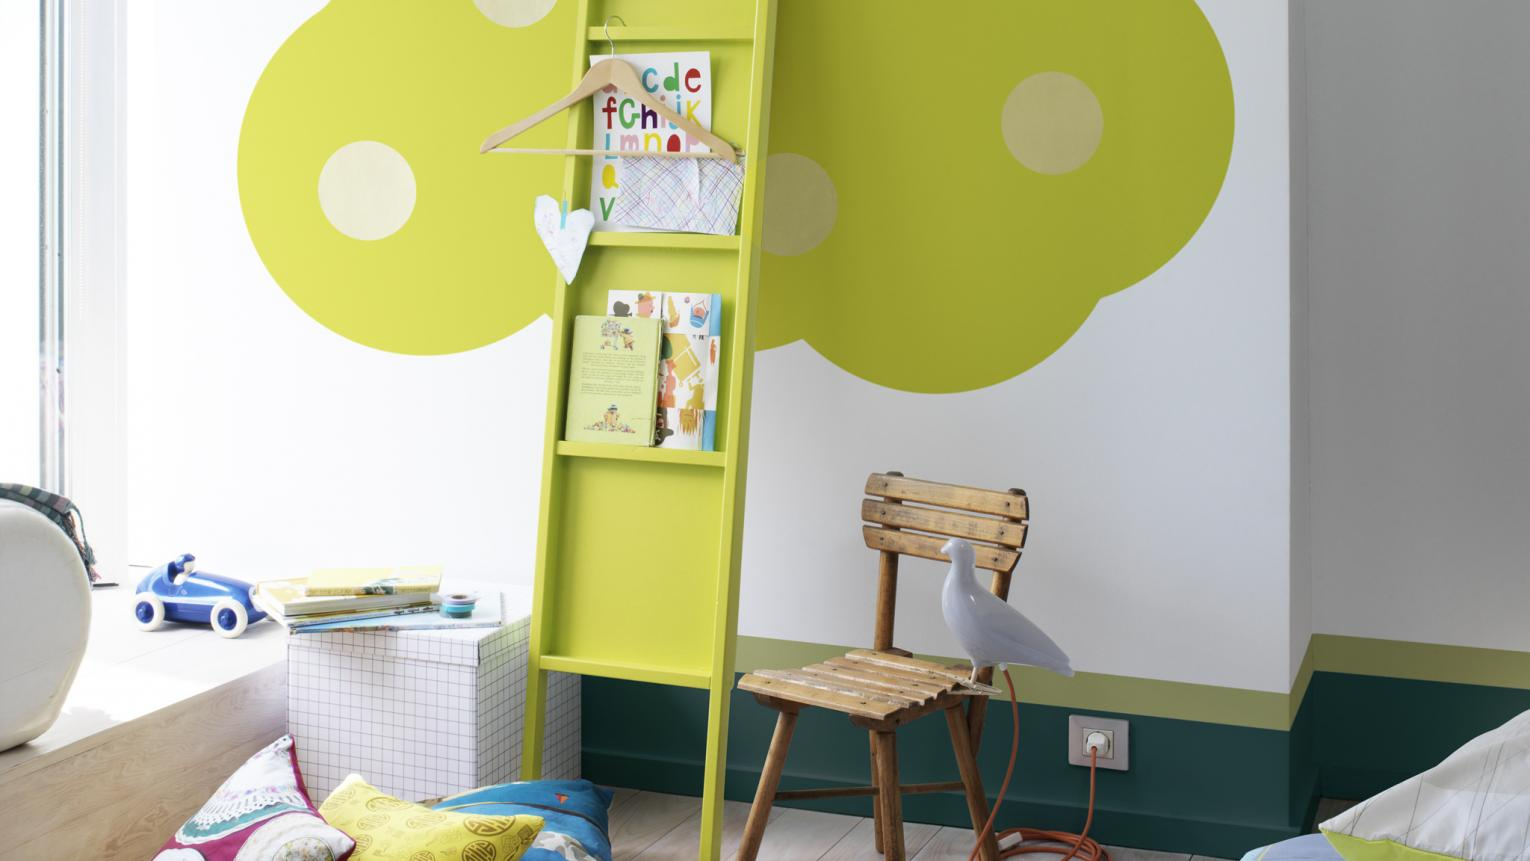 Be playful with your use of colour and shapes in a children's room.